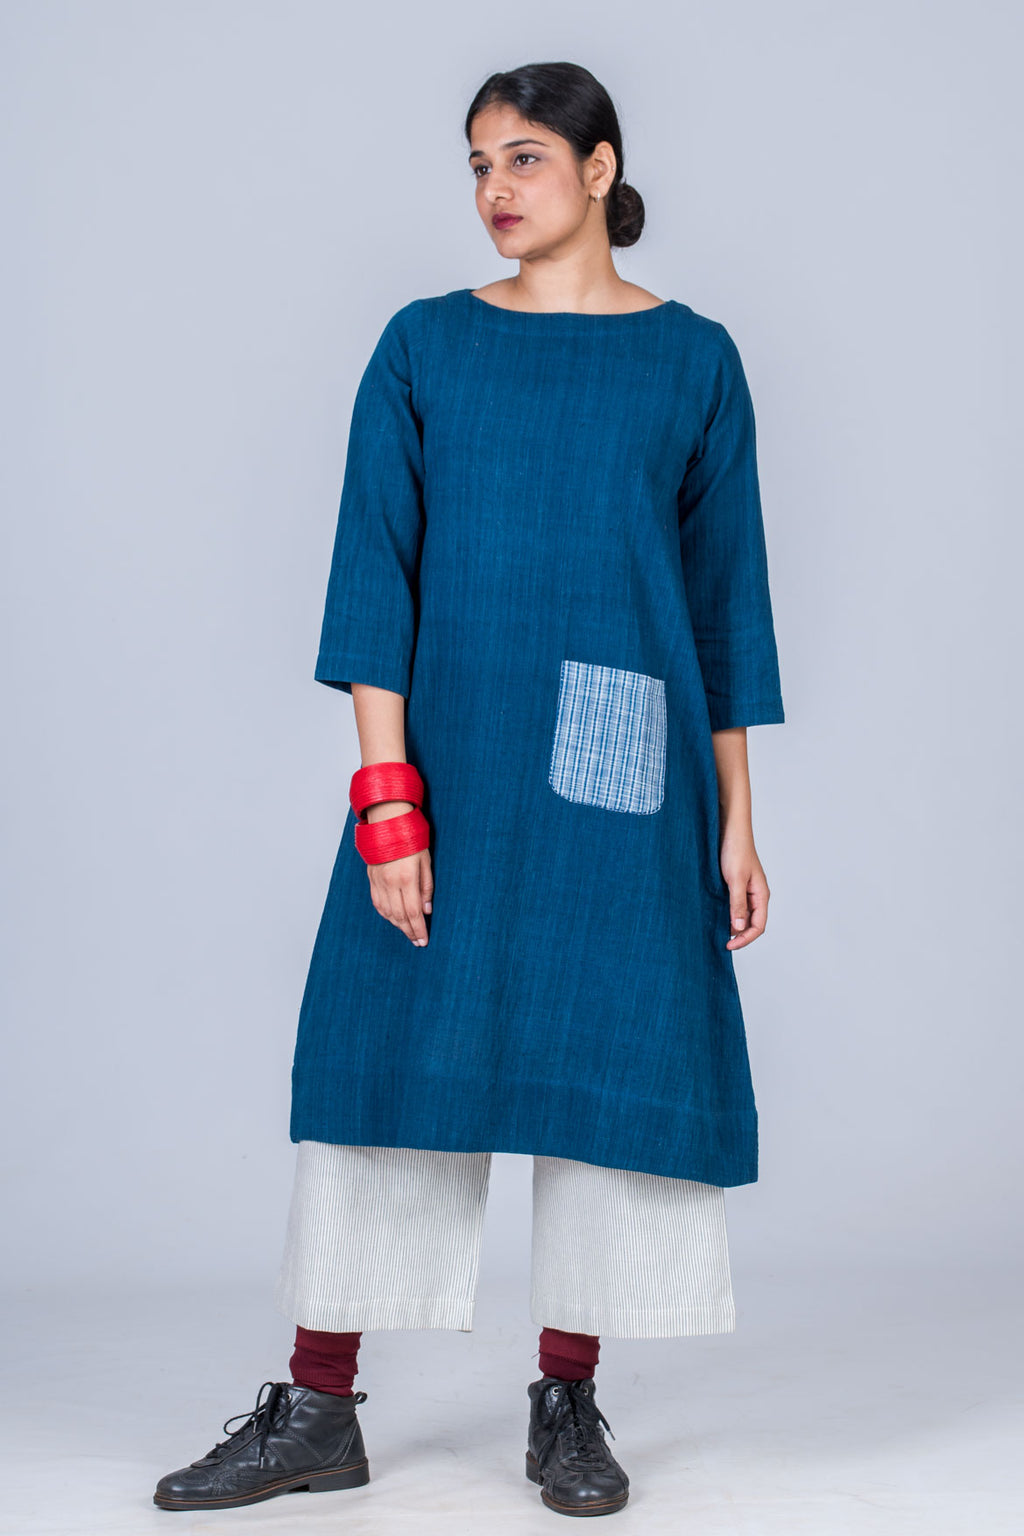 Natural Indigo Khadi Dress - PARINA - Upasana Design Studio